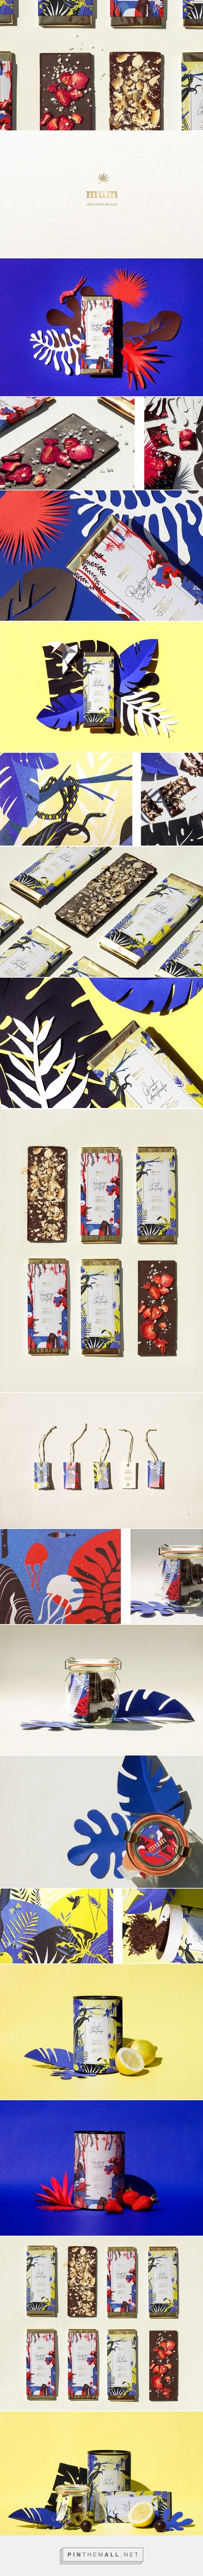 Mum Chocolate Factory Branding and Packaging by Alessia Sistori   Fivestar Branding Agency – Design and Branding Agency & Curated Inspiration Gallery